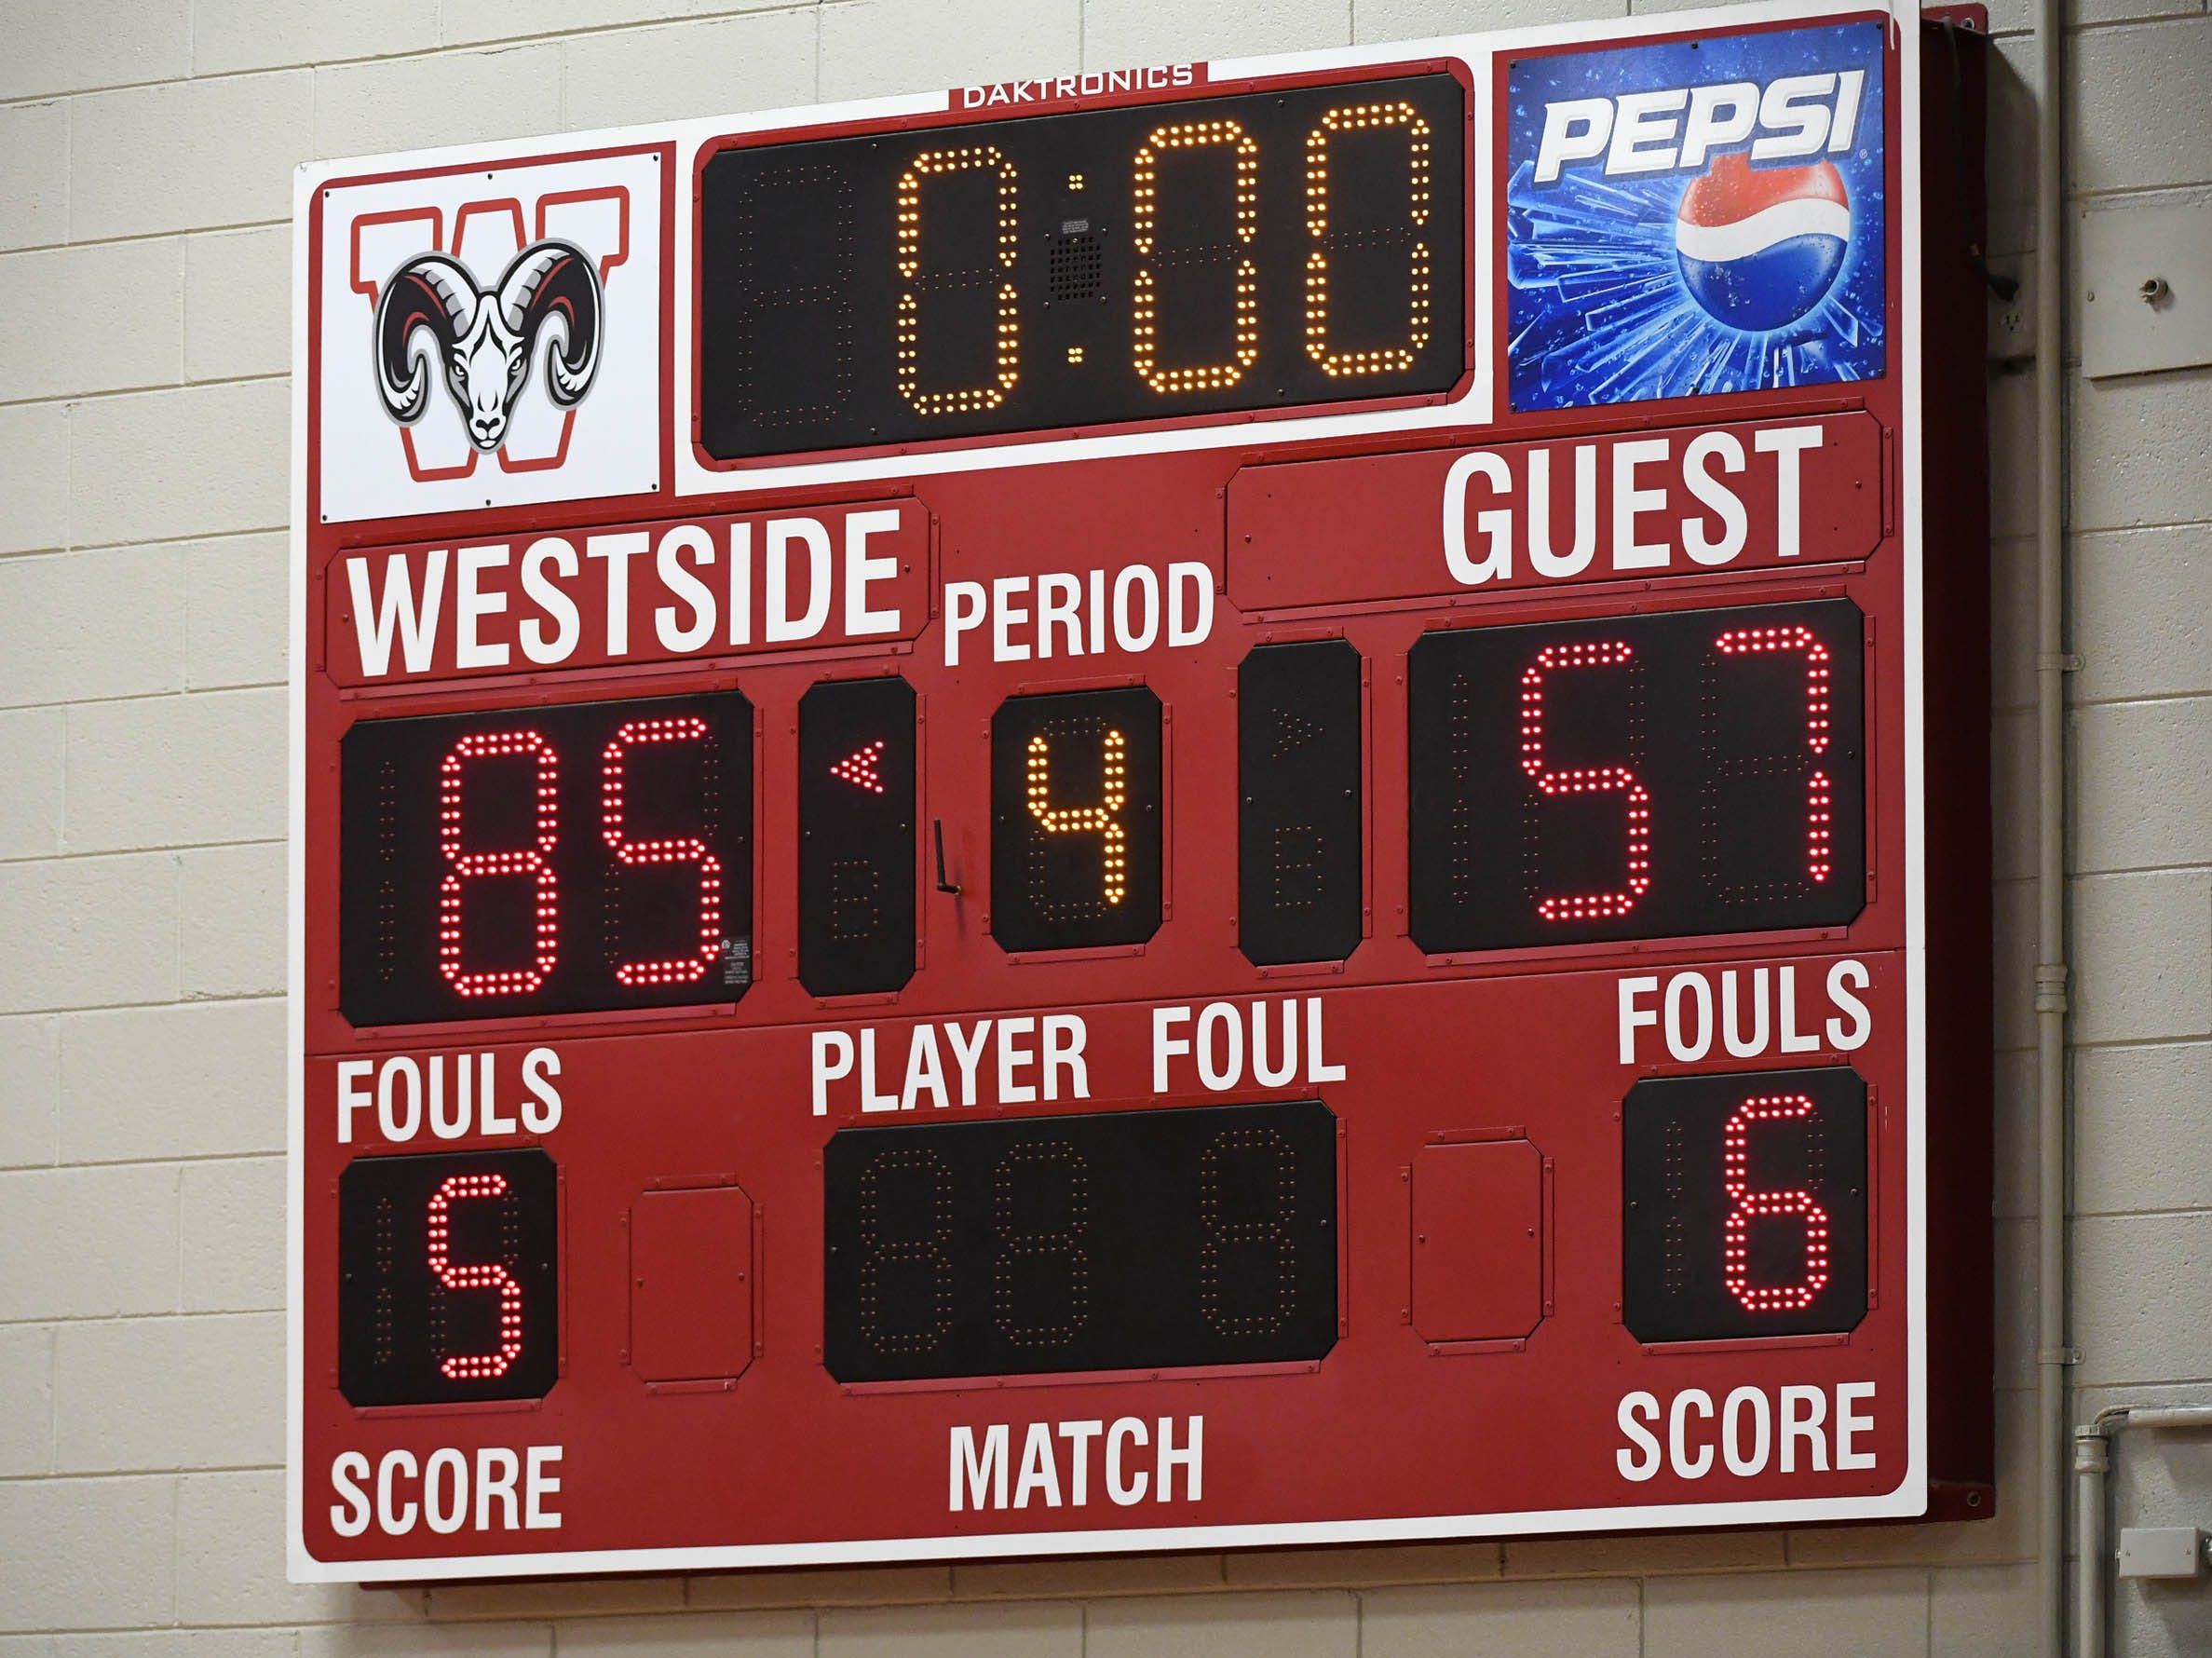 The scoreboard at the Westside High School gymnasium shows a final from earlier this year.